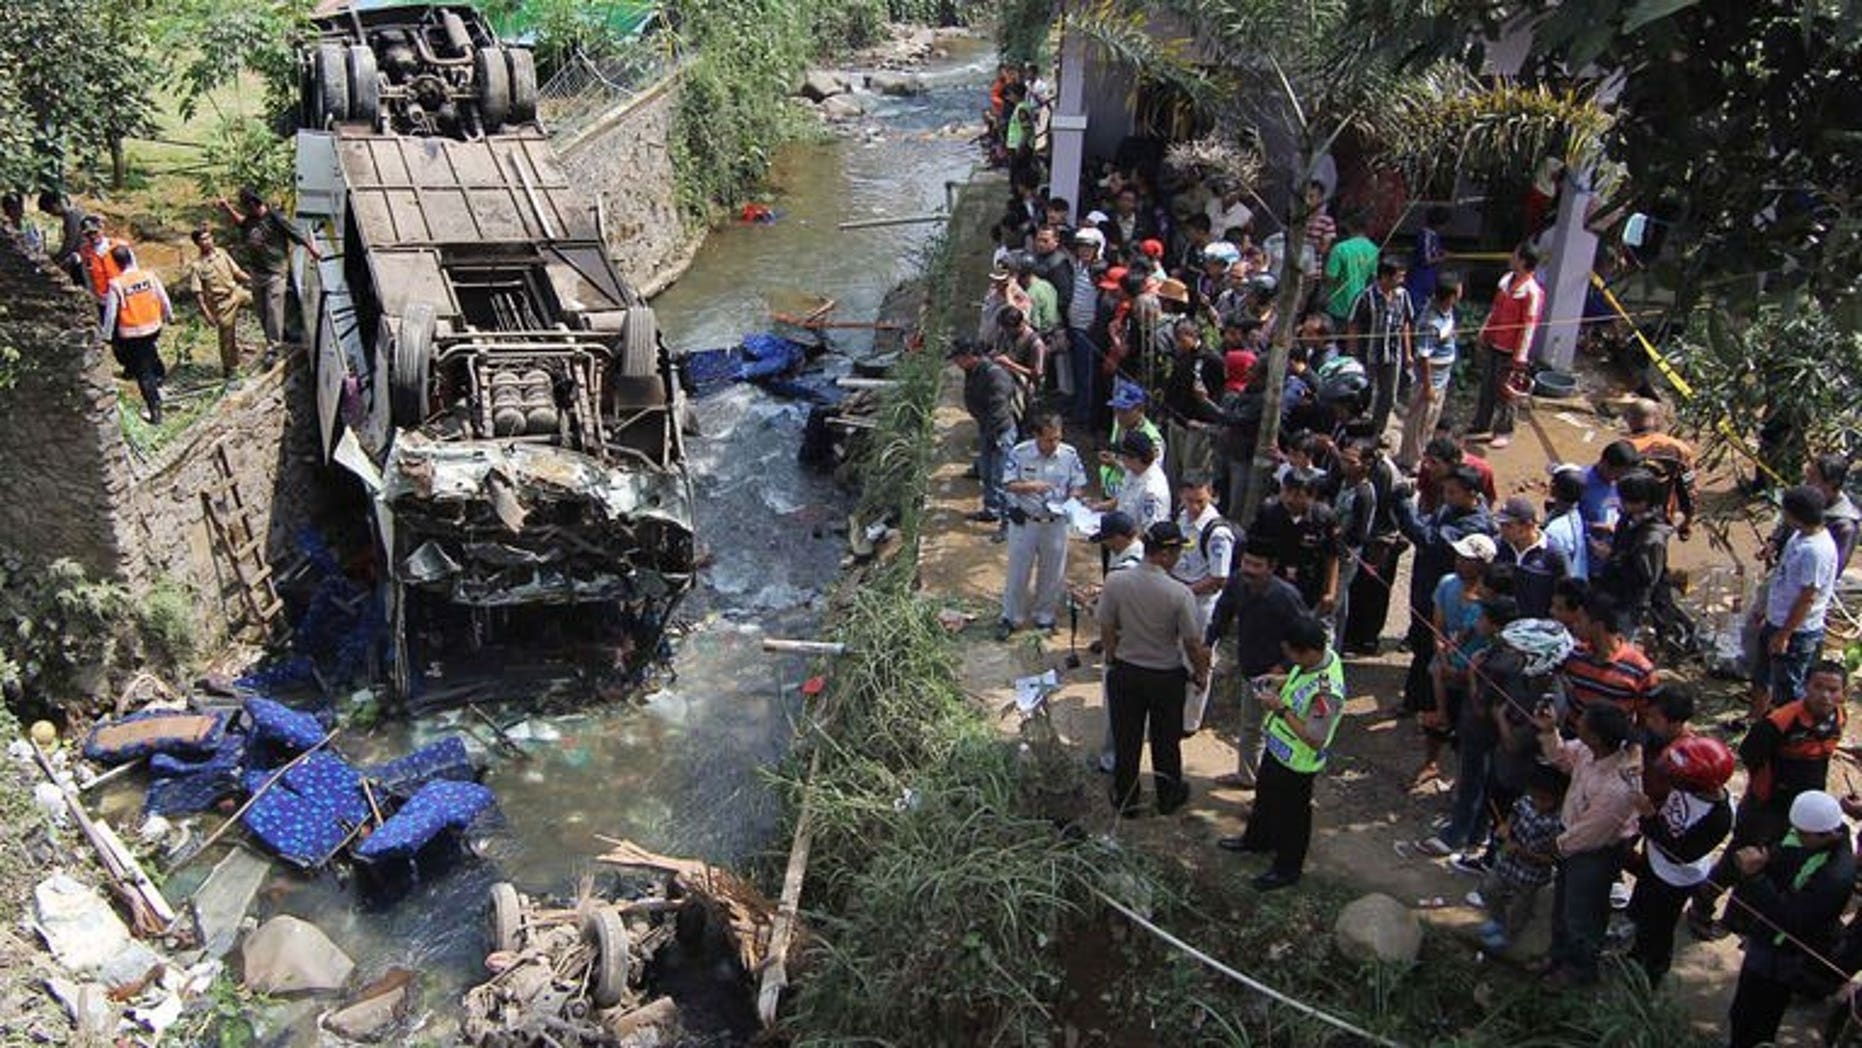 Indonesian police and officials examine the scene of an accident after a bus (L) plunged into a river in Cisarua, Bogor, in West Java on August 21, 2013. Eighteen people were killed and dozens injured Wednesday when a bus plunged into a river as it returned from a church outing on Indonesia's main island of Java, police said.